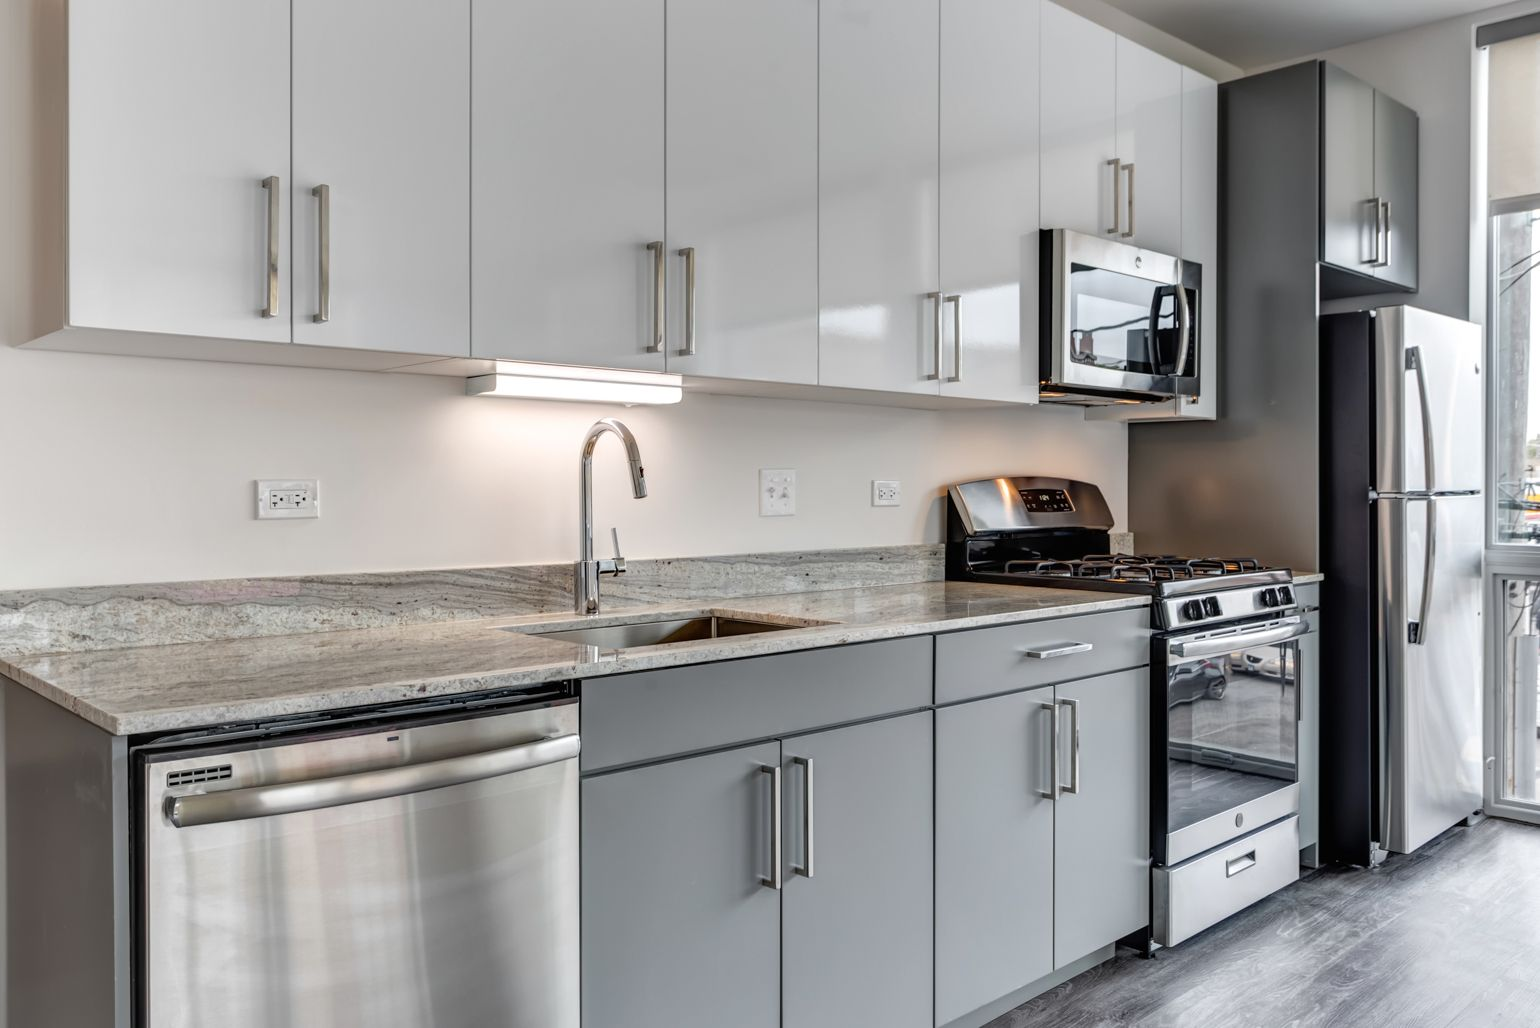 Modern Kitchen With White Cabinets Hardwood Floors Marble Countertops Stainless Steel A Kitchen Cabinets To Ceiling Cabinets To Ceiling Kitchen Design Color